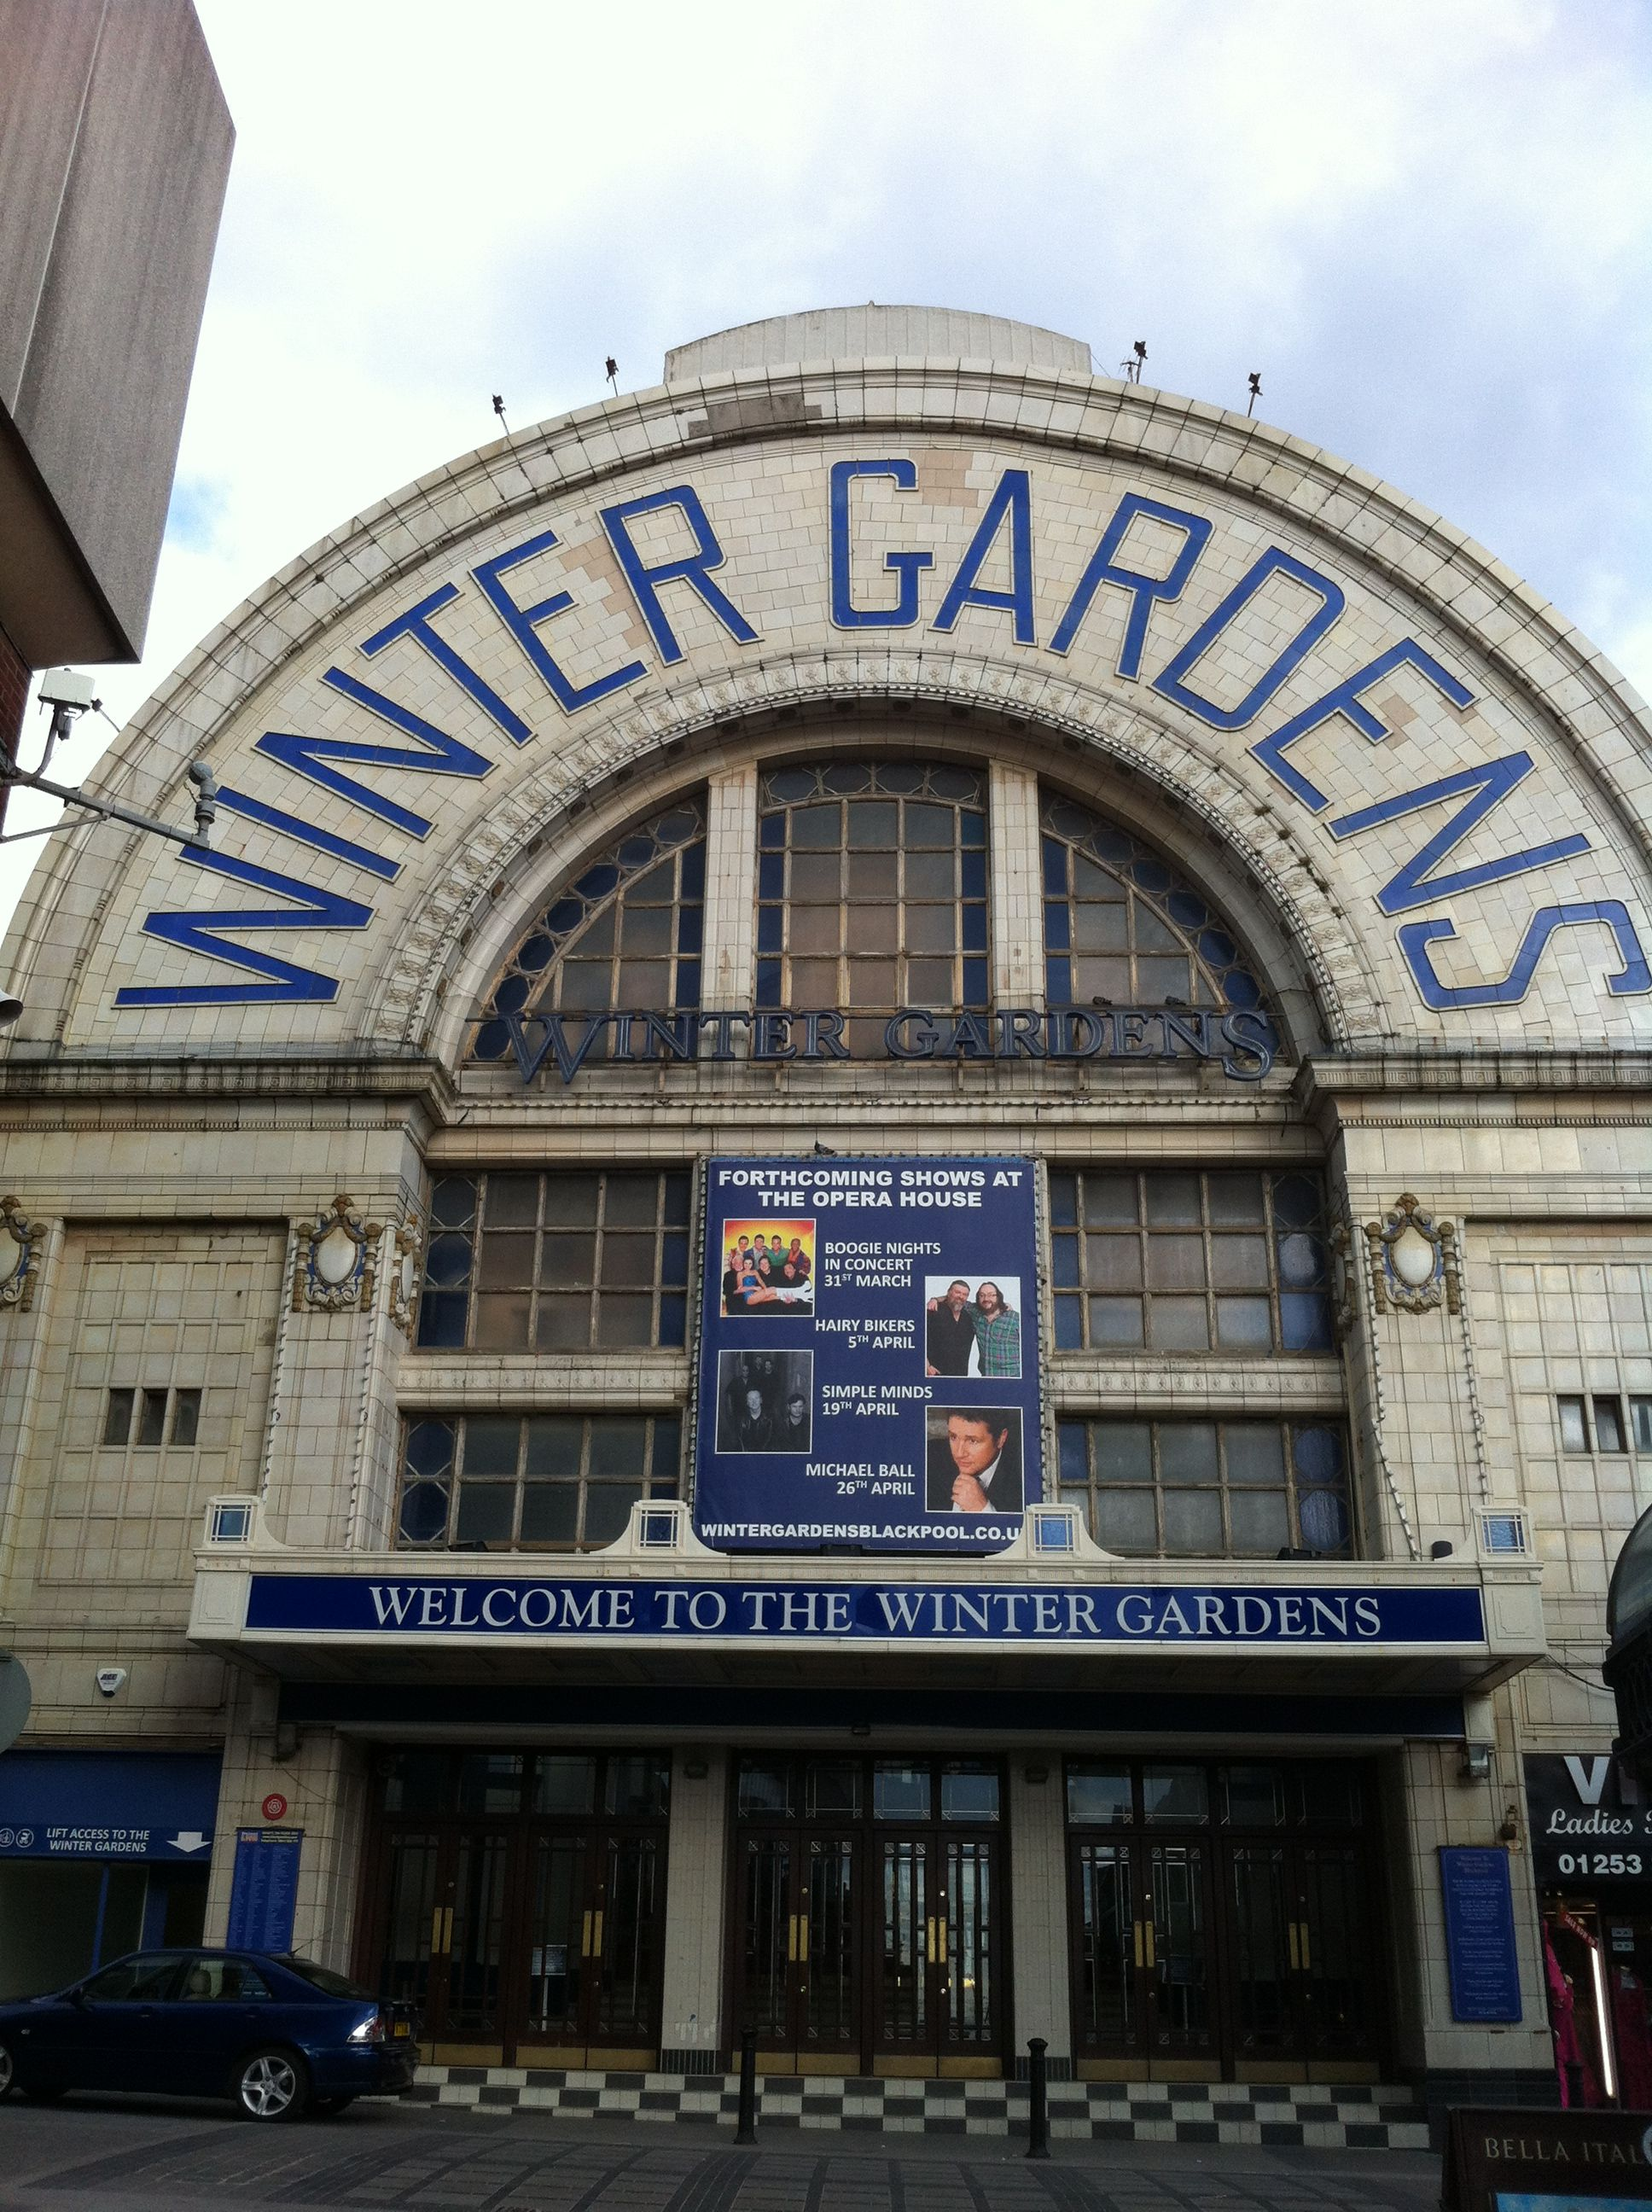 W is of course for the famous Winter Gardens. Sadly I couldn't get in due a strictly ballroom type event.